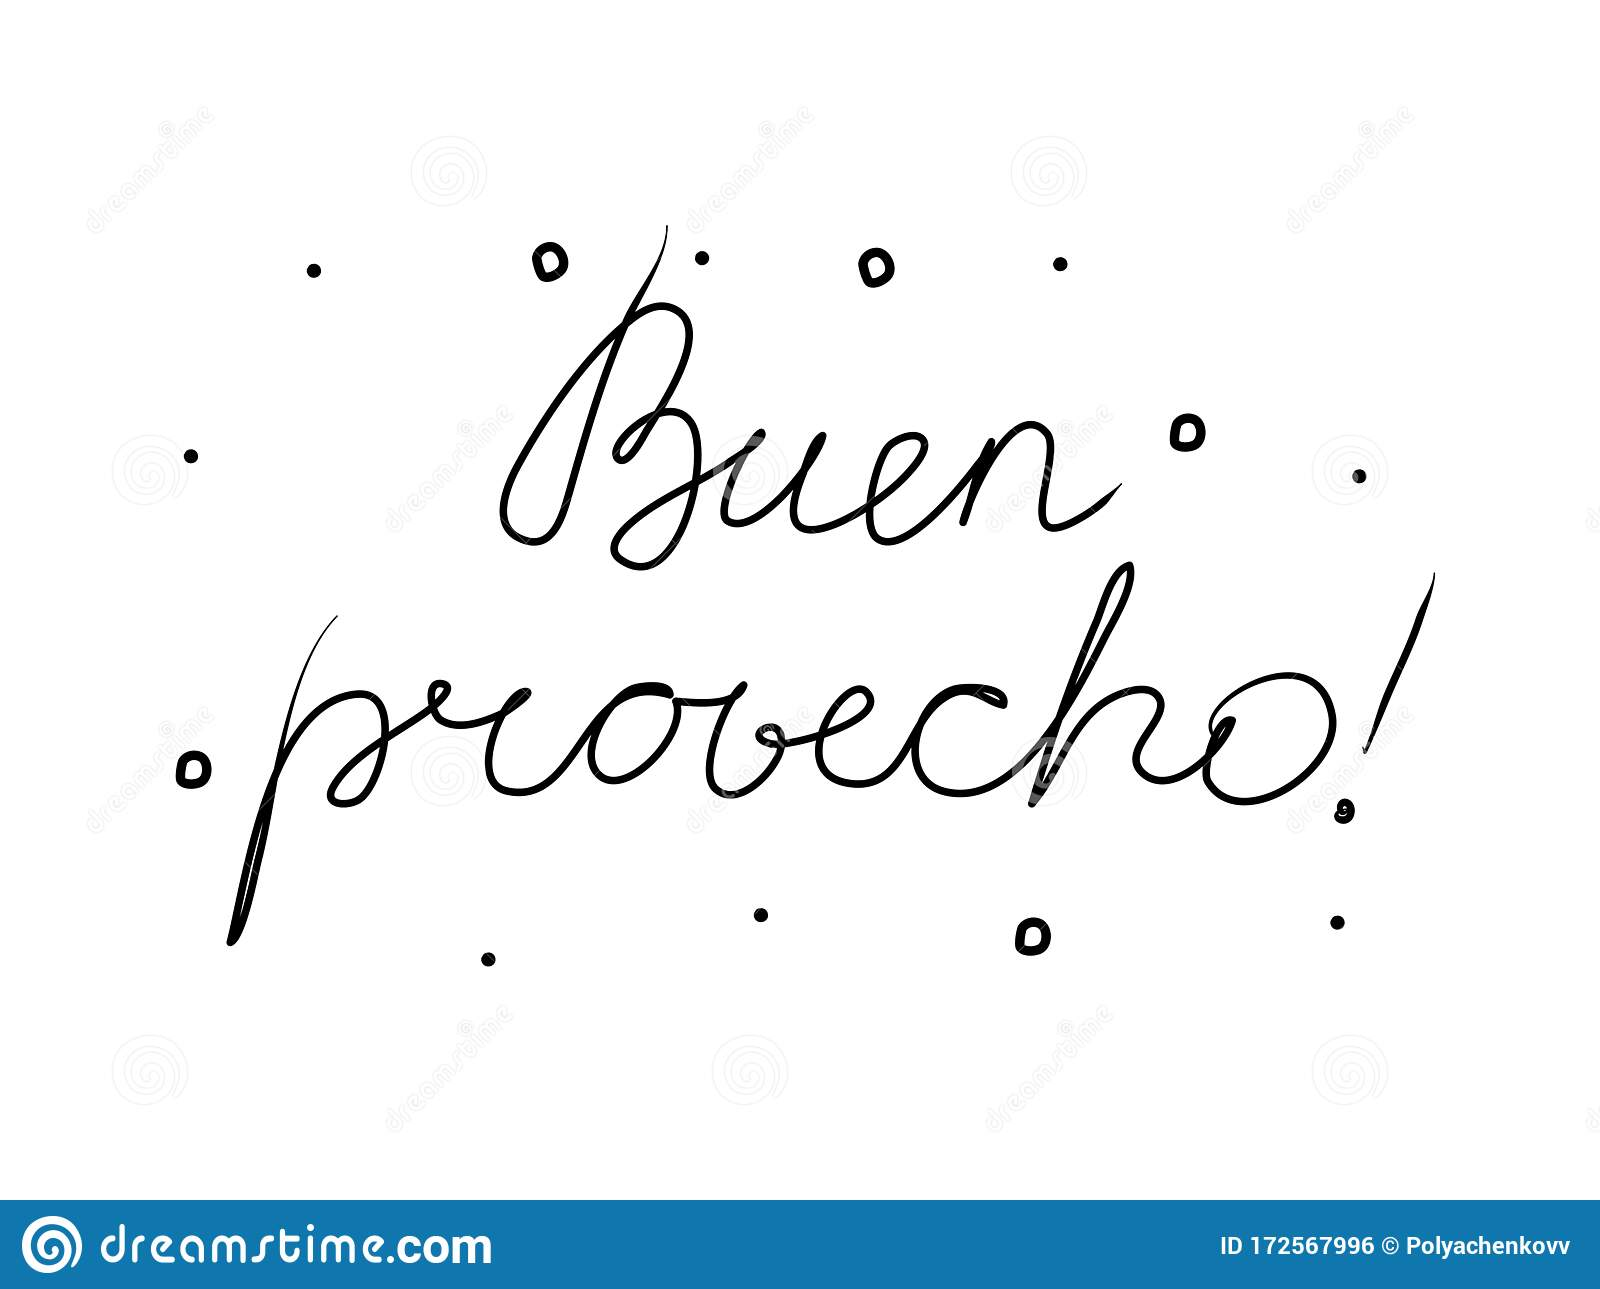 Buen Provecho Phrase Handwritten With A Calligraphy Brush